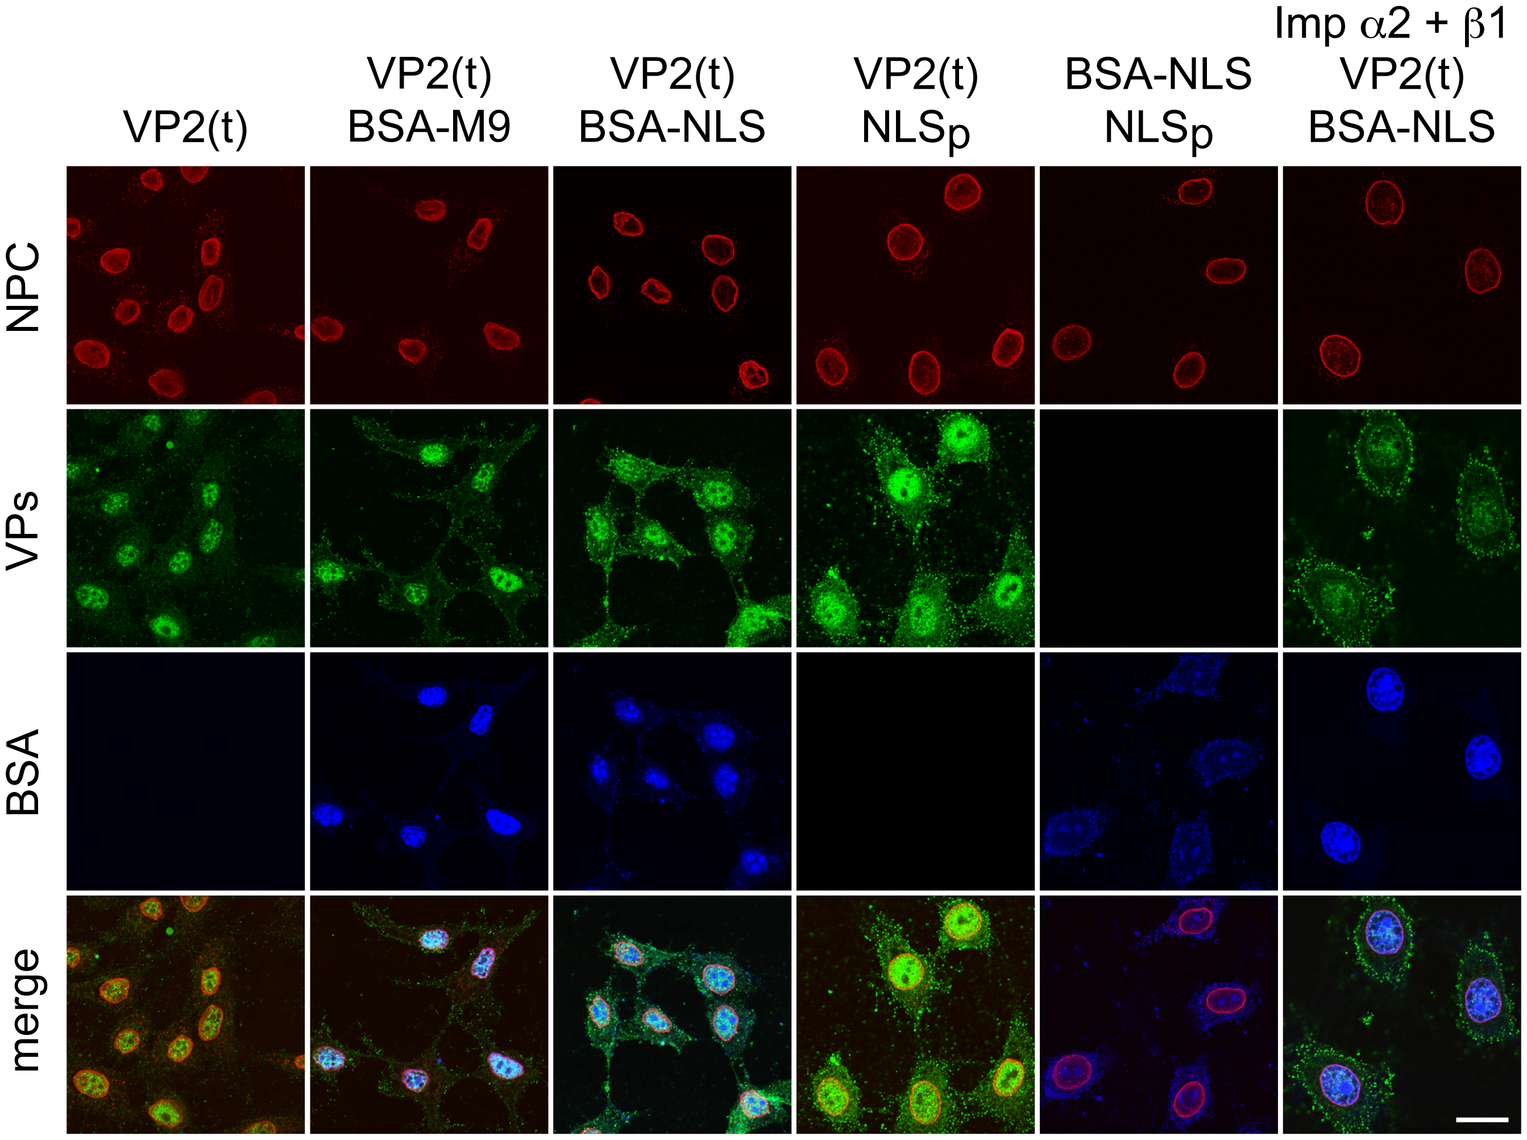 Importins α/2β1 and transportin are not involved in VP2 nuclear import.